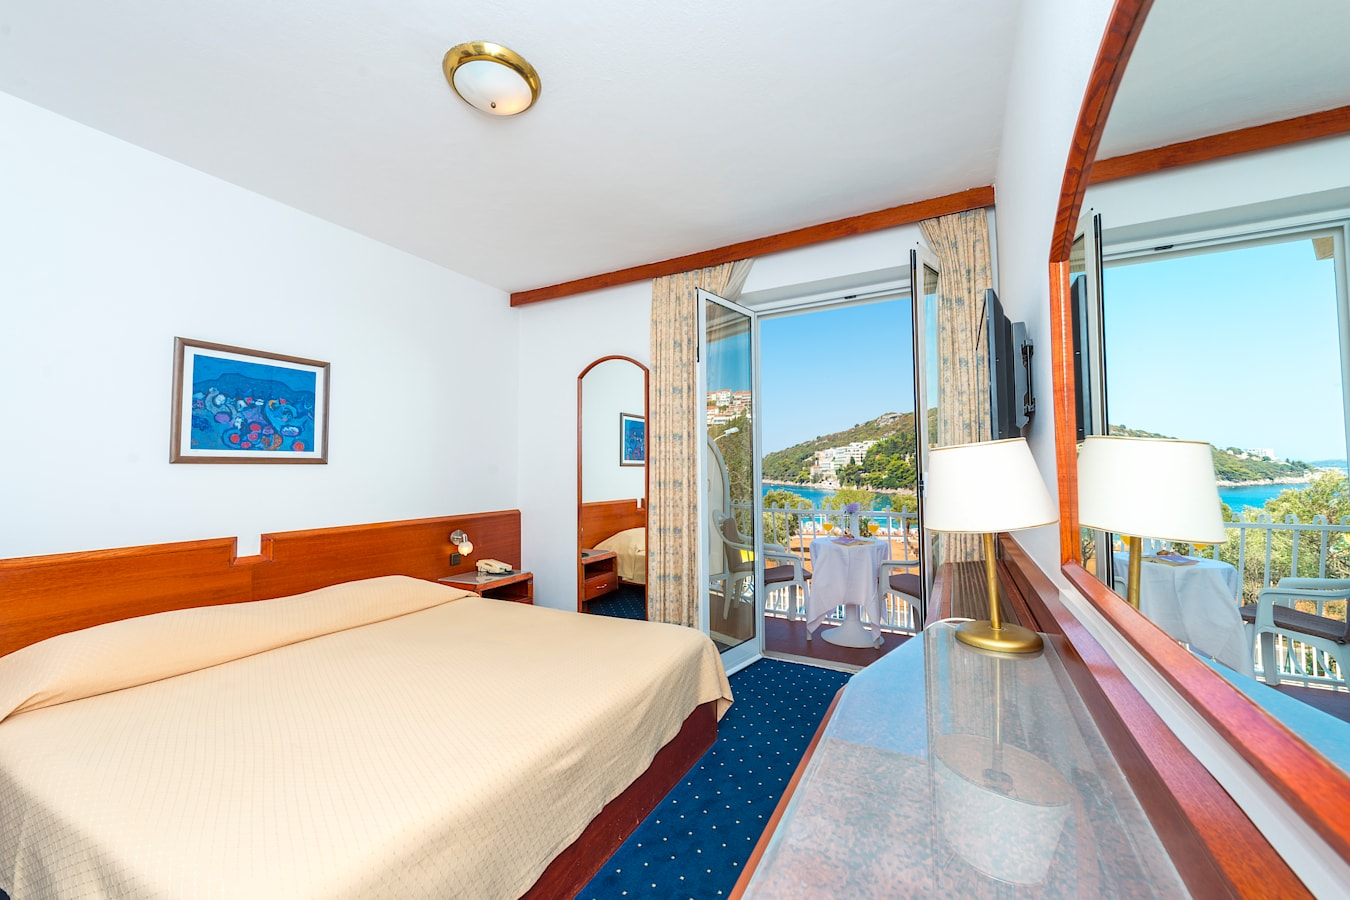 komodor-hotel-double-room-balcony-seaview.jpg